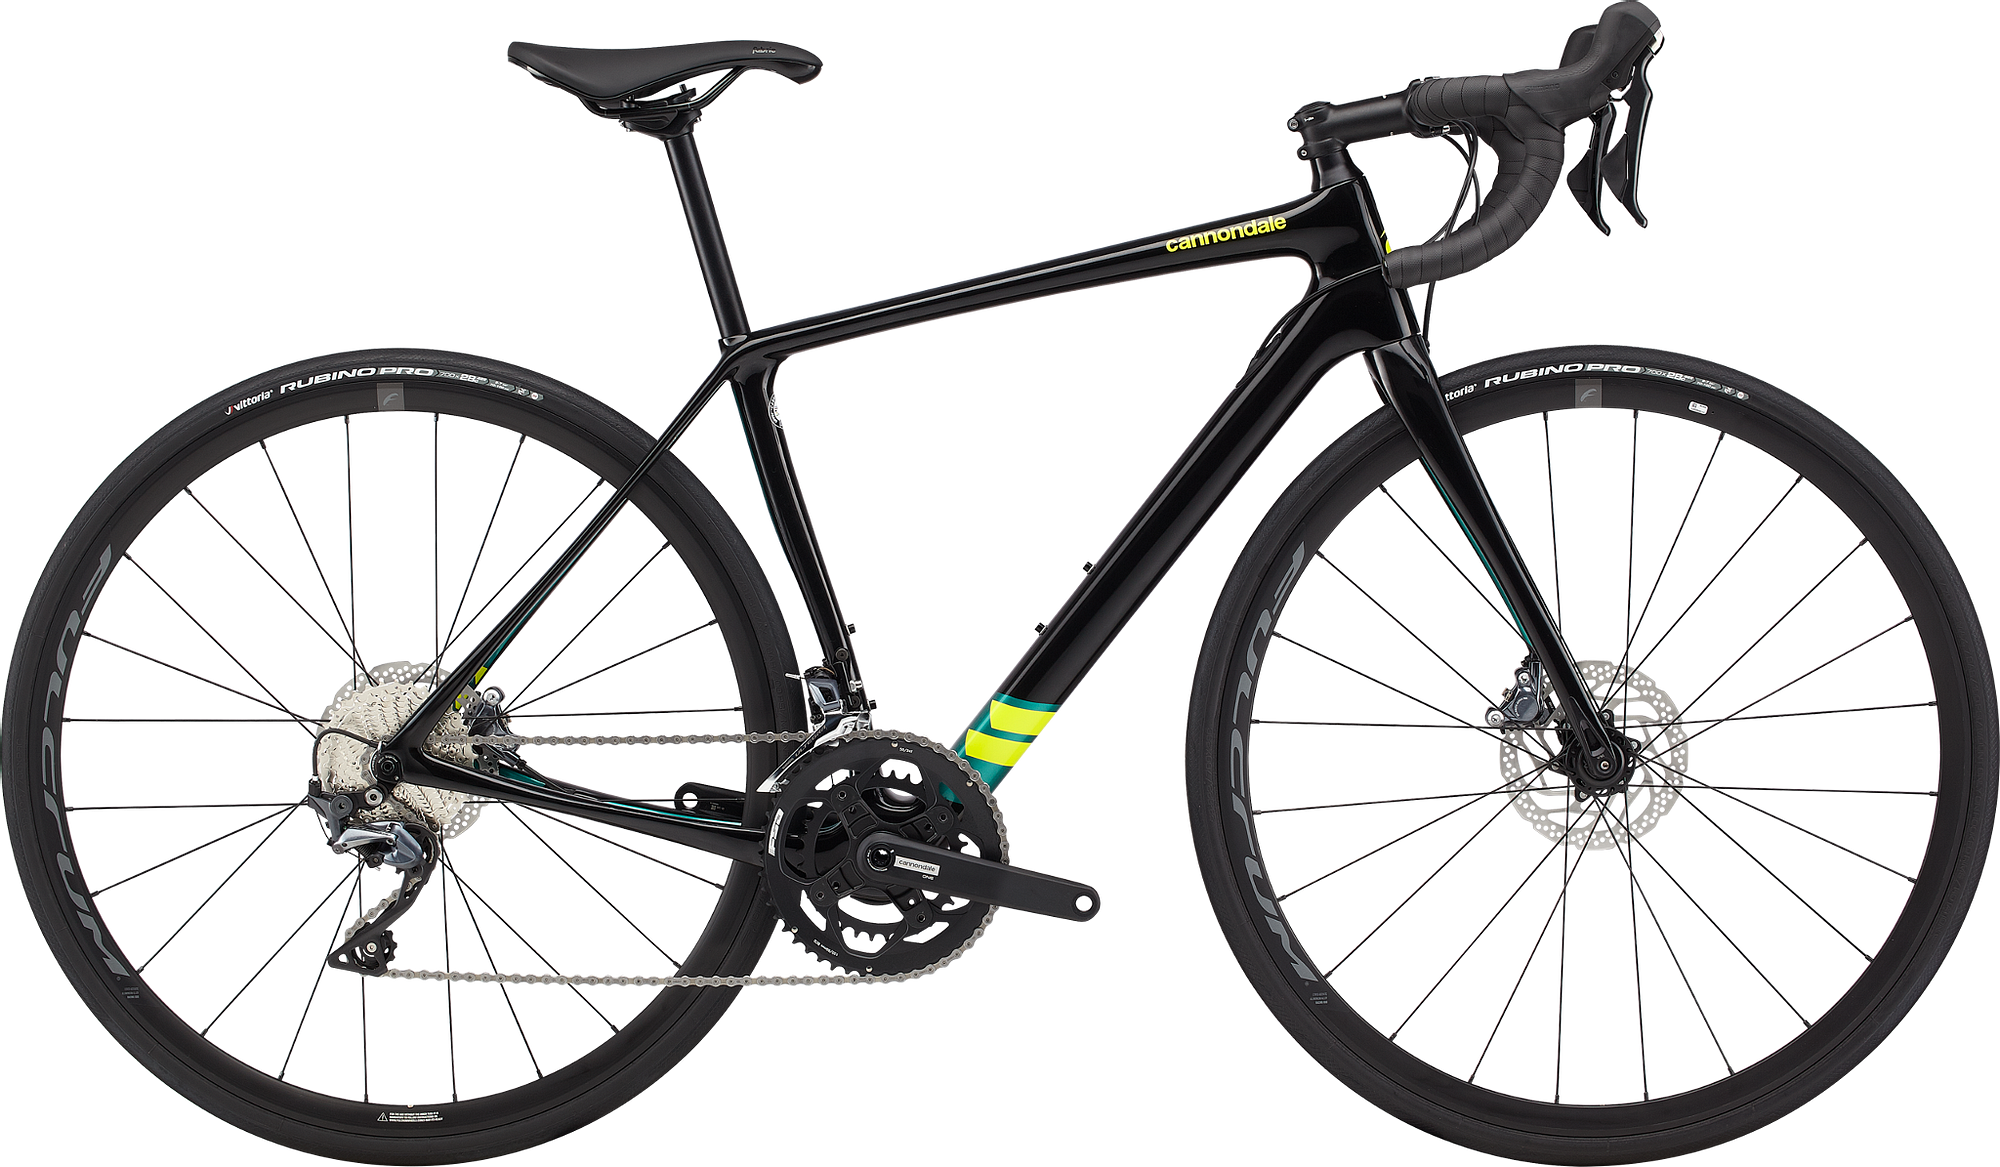 Road bikes intermediárias para mulheres, Cannondale Synapse Carbon Disc Ultegra